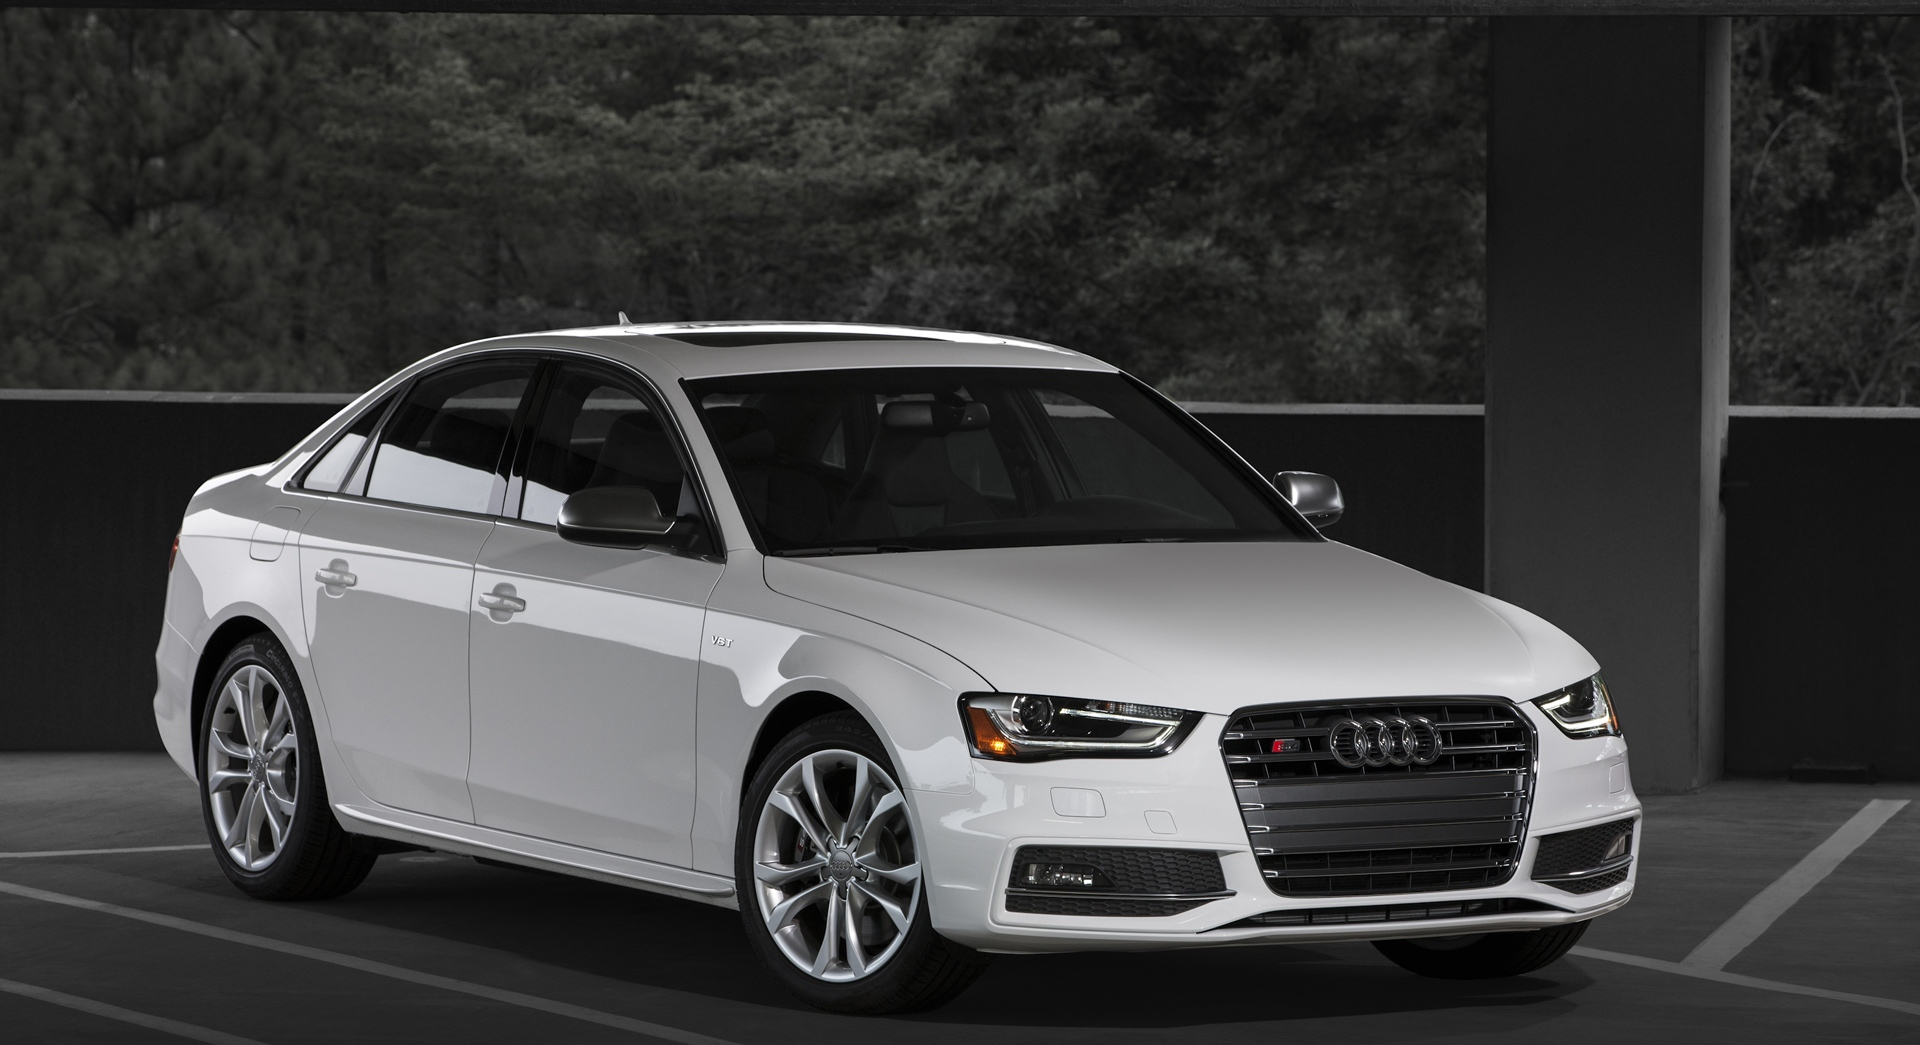 Audi S4 White Desktop Hd Desktop Wallpapers 4k Hd